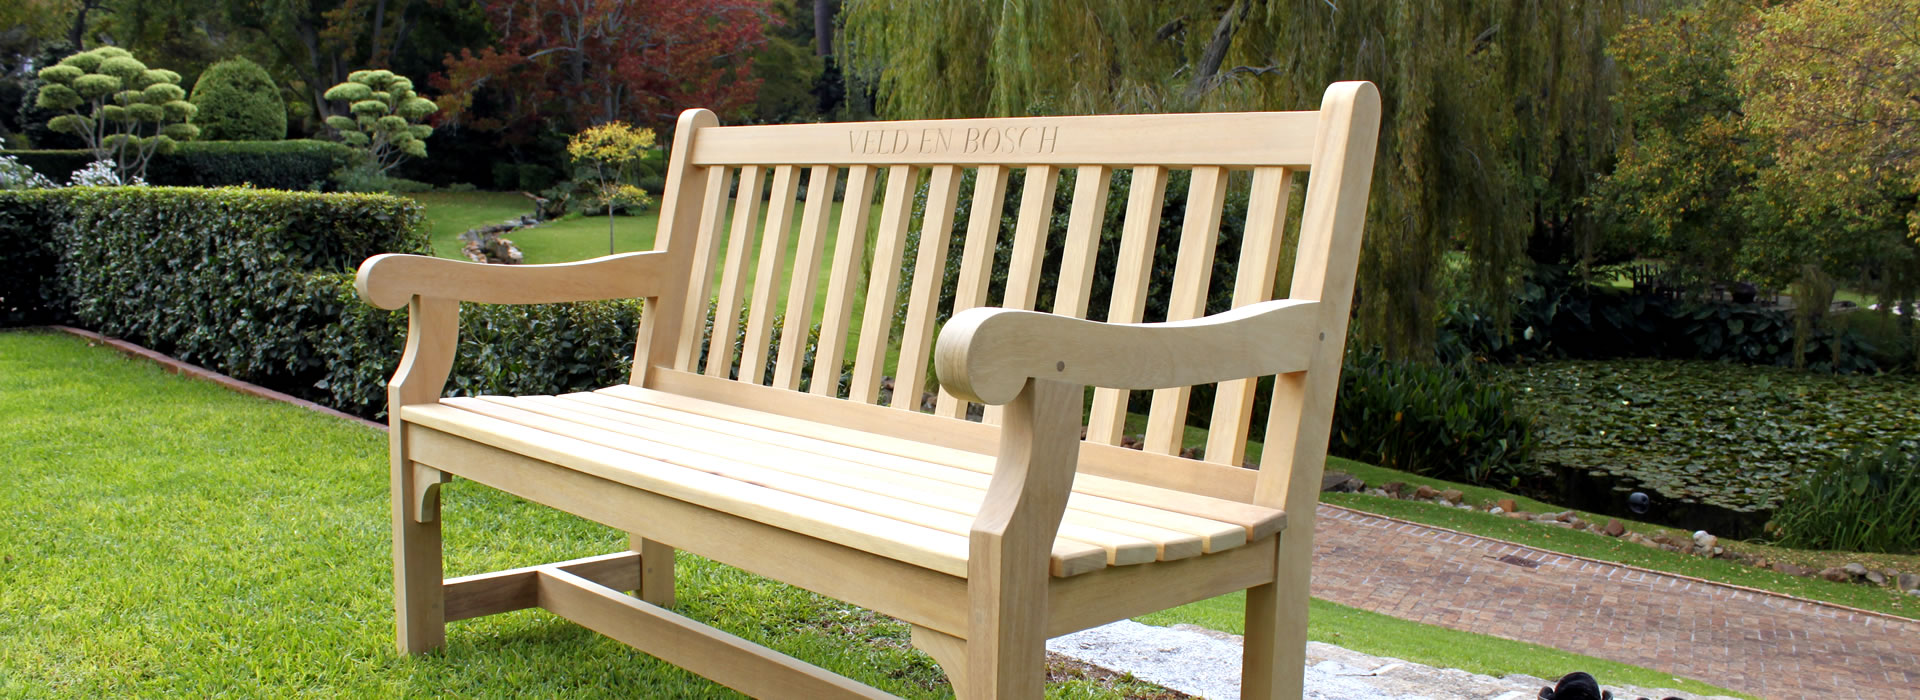 Benchmark Wood Classics - Handcrafted Outdoor Furniture